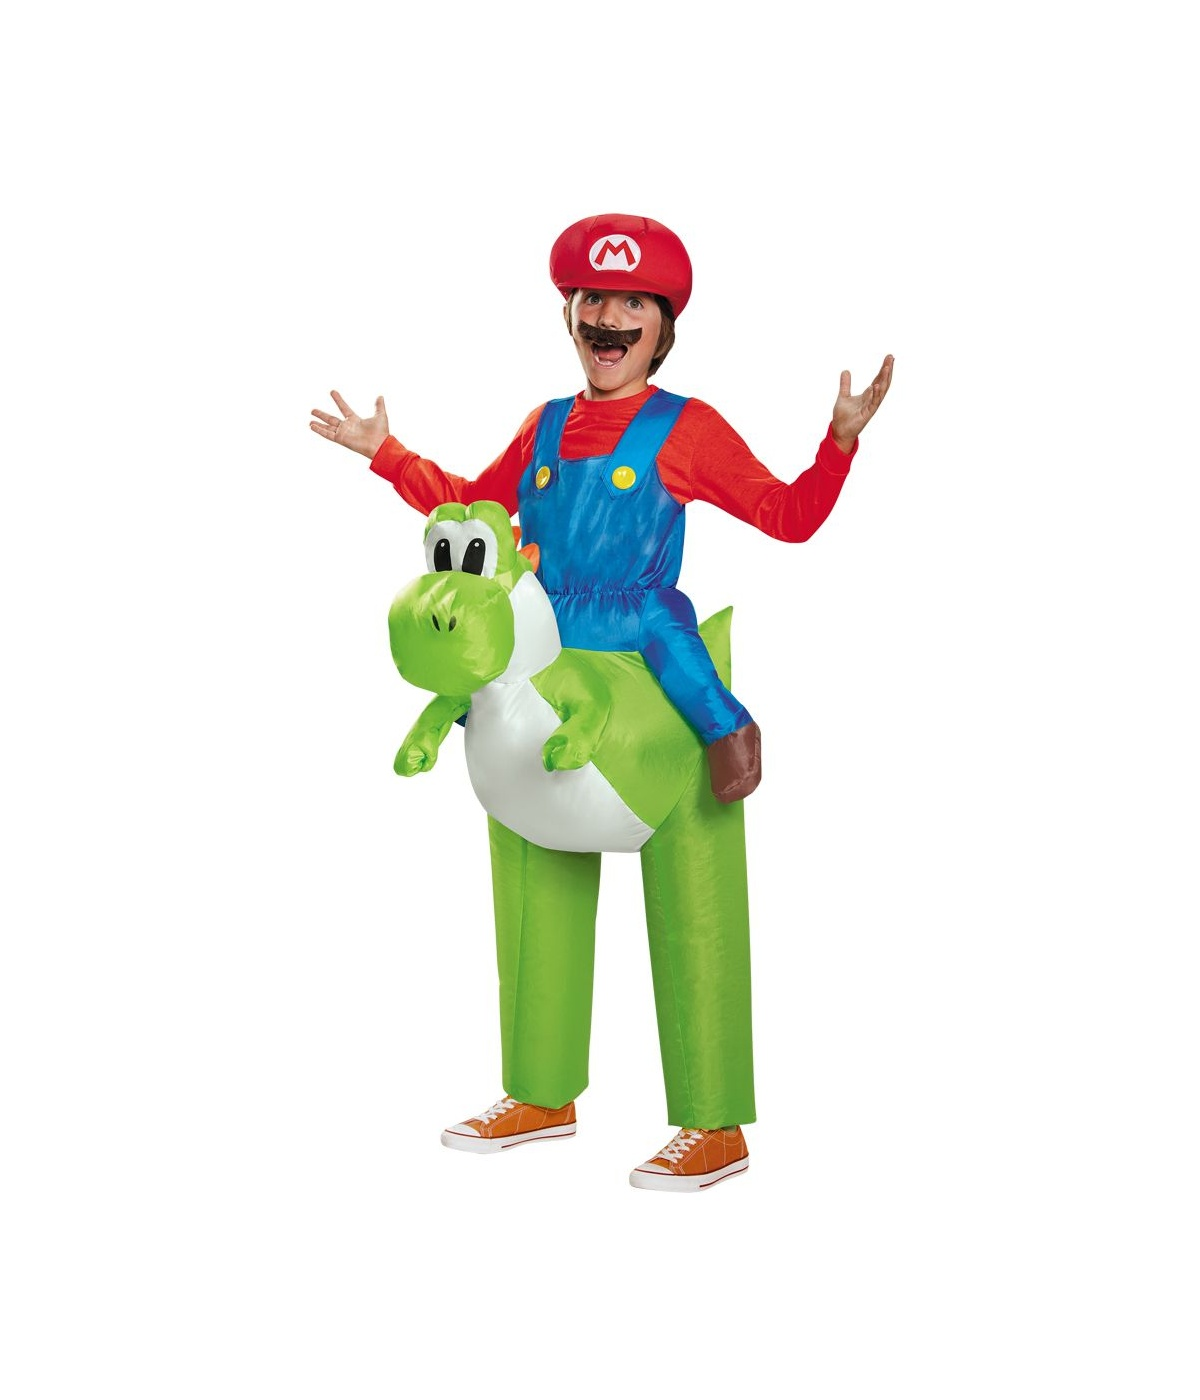 Riding Toys For Boys : Super mario bros riding yoshi boys costume video